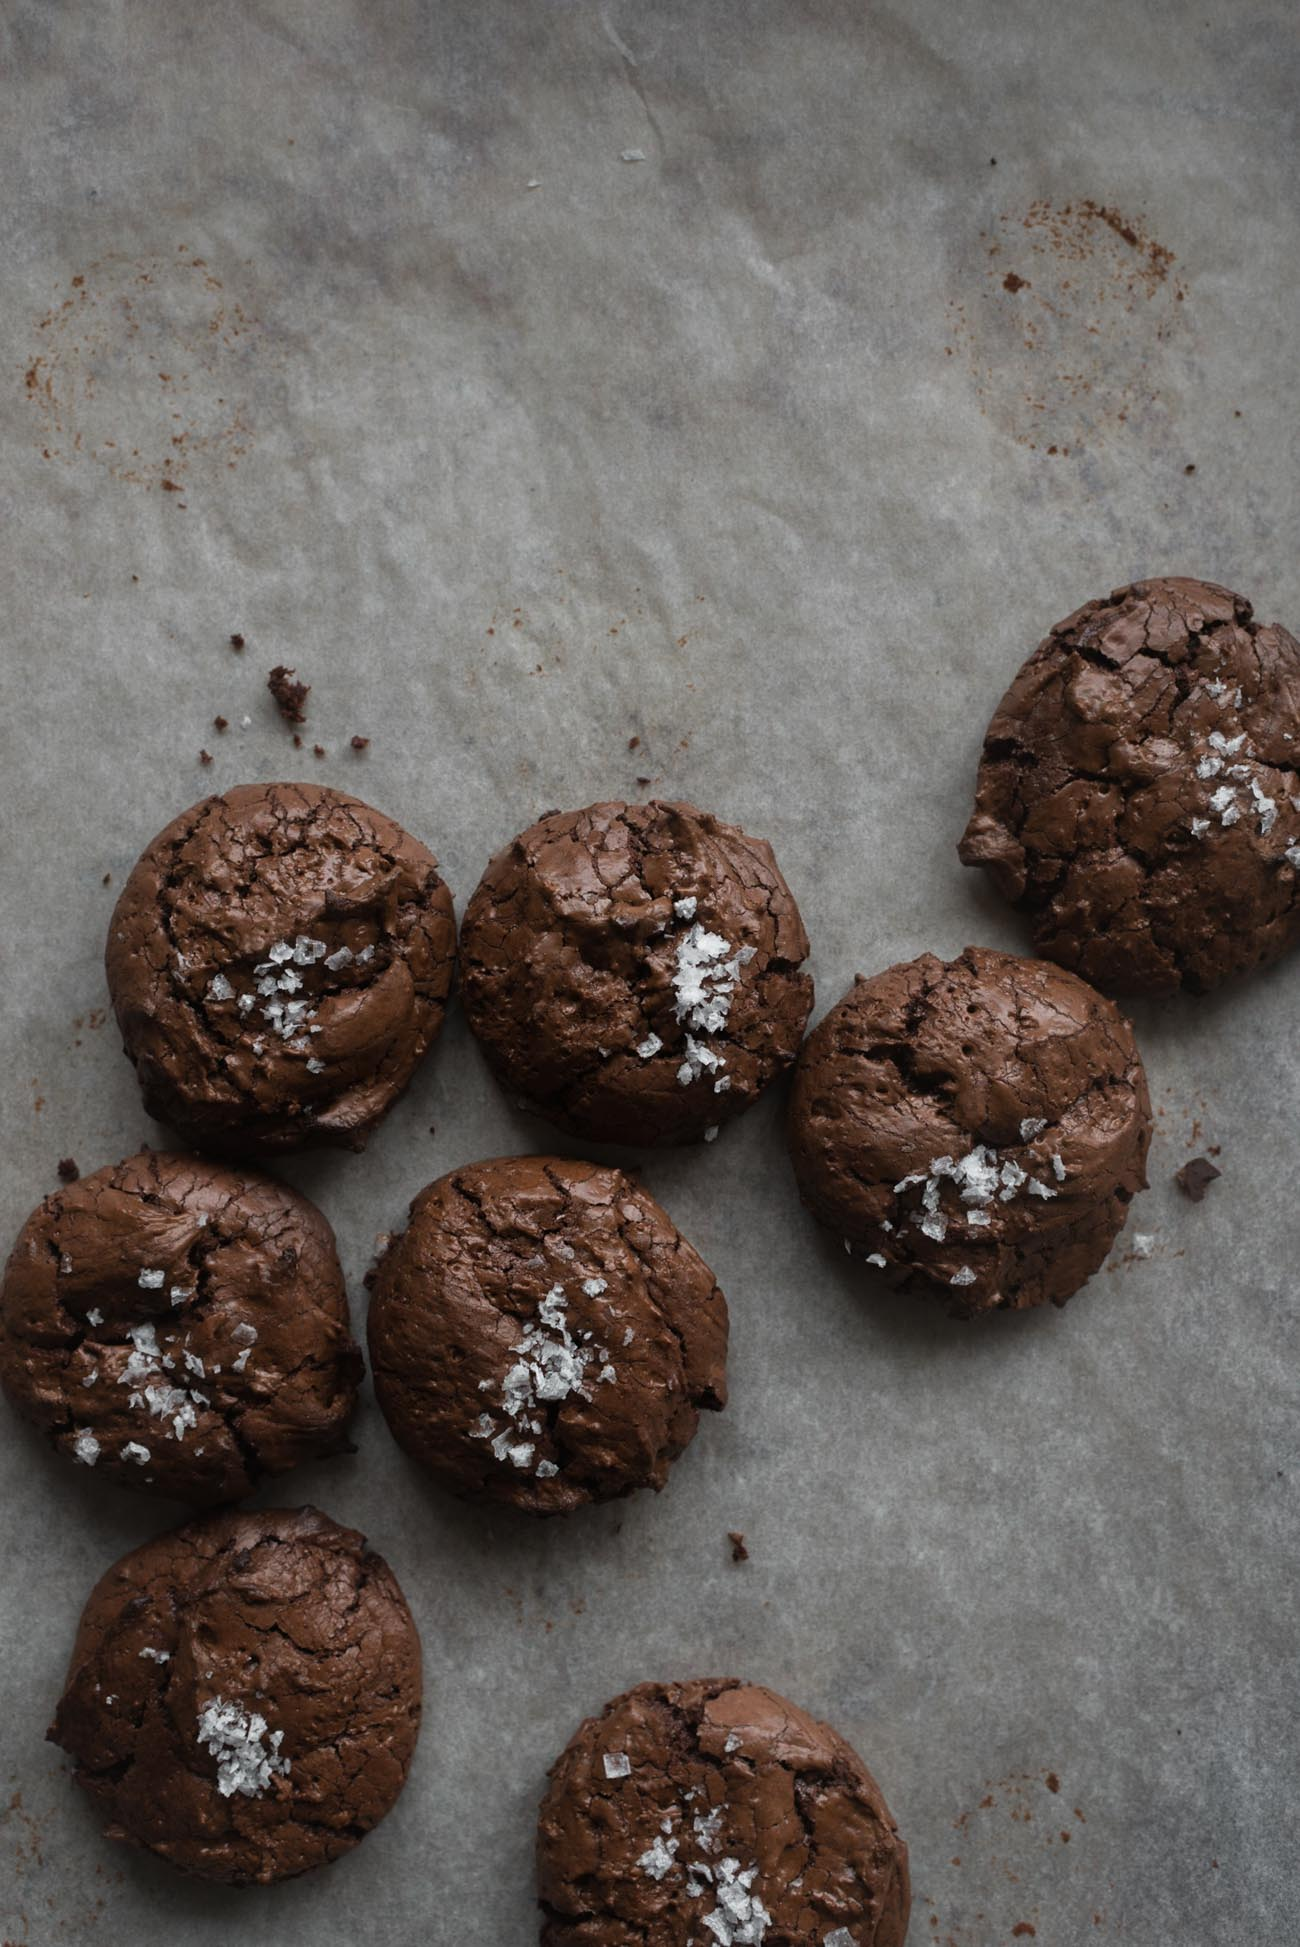 Bitter-Chocolate-Olive-Oil-Cookies-with-Buckwheat-and-Salt-1.jpg